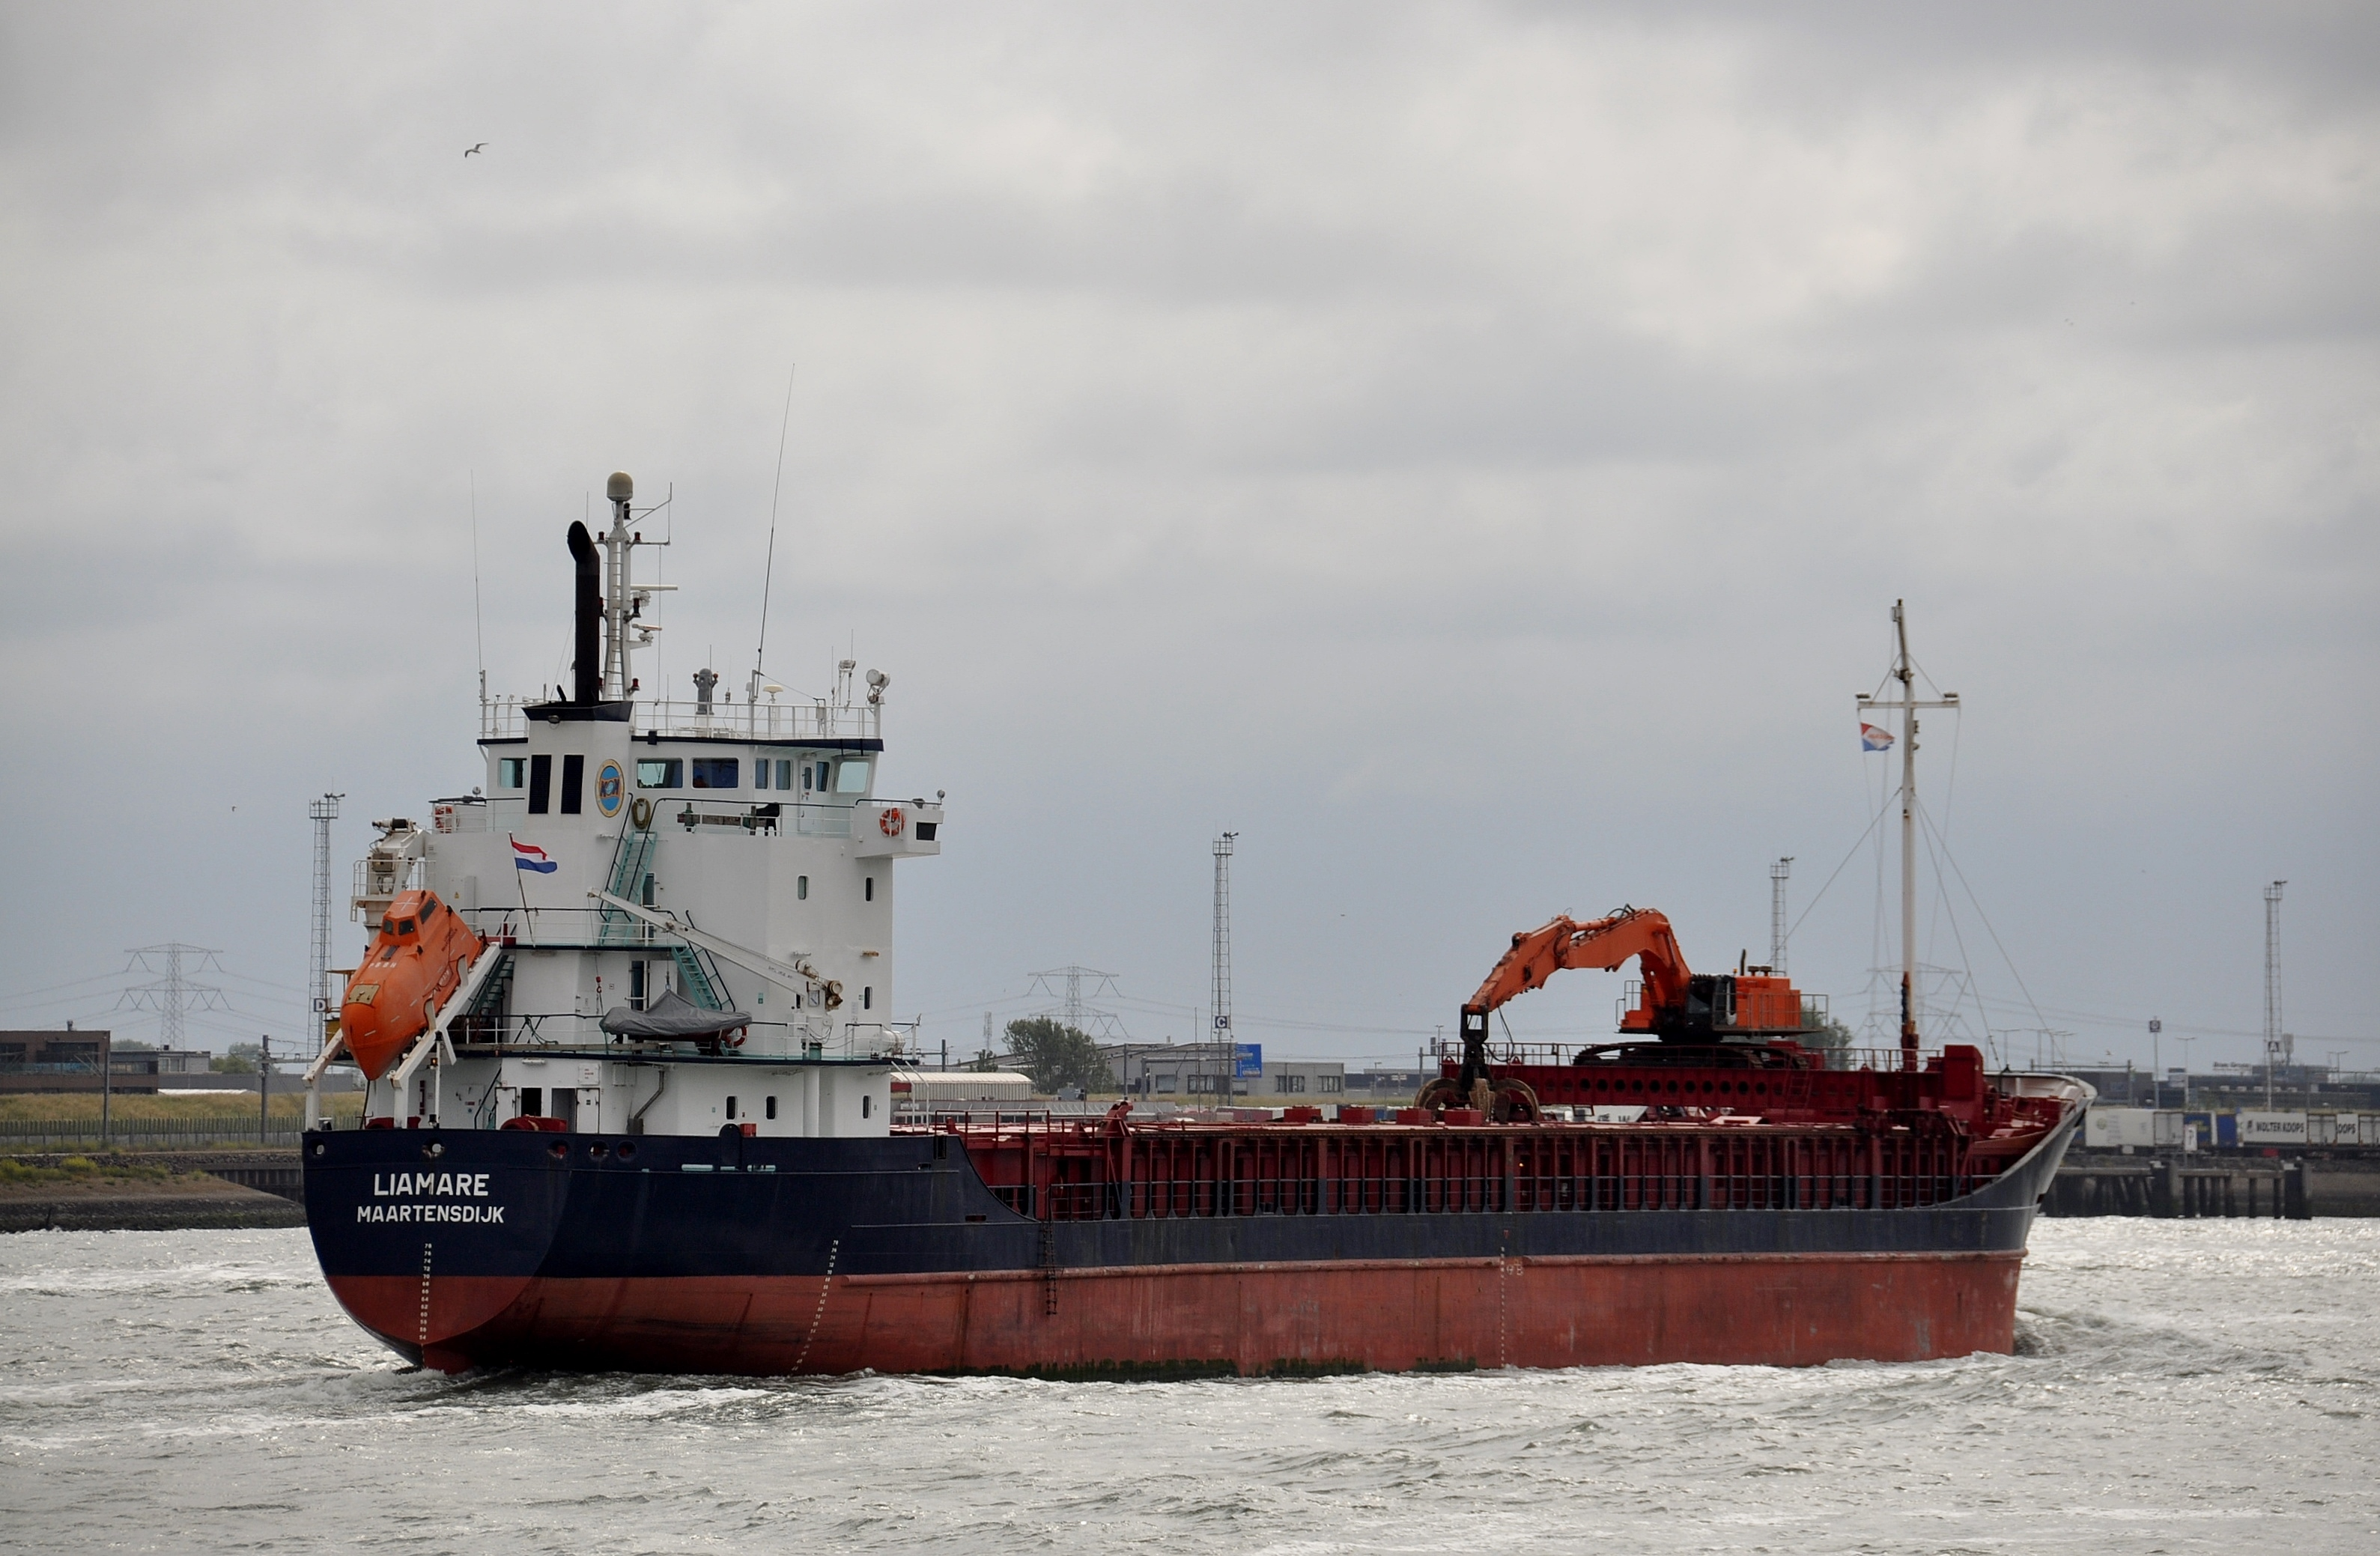 mv Liamare underway to Norway